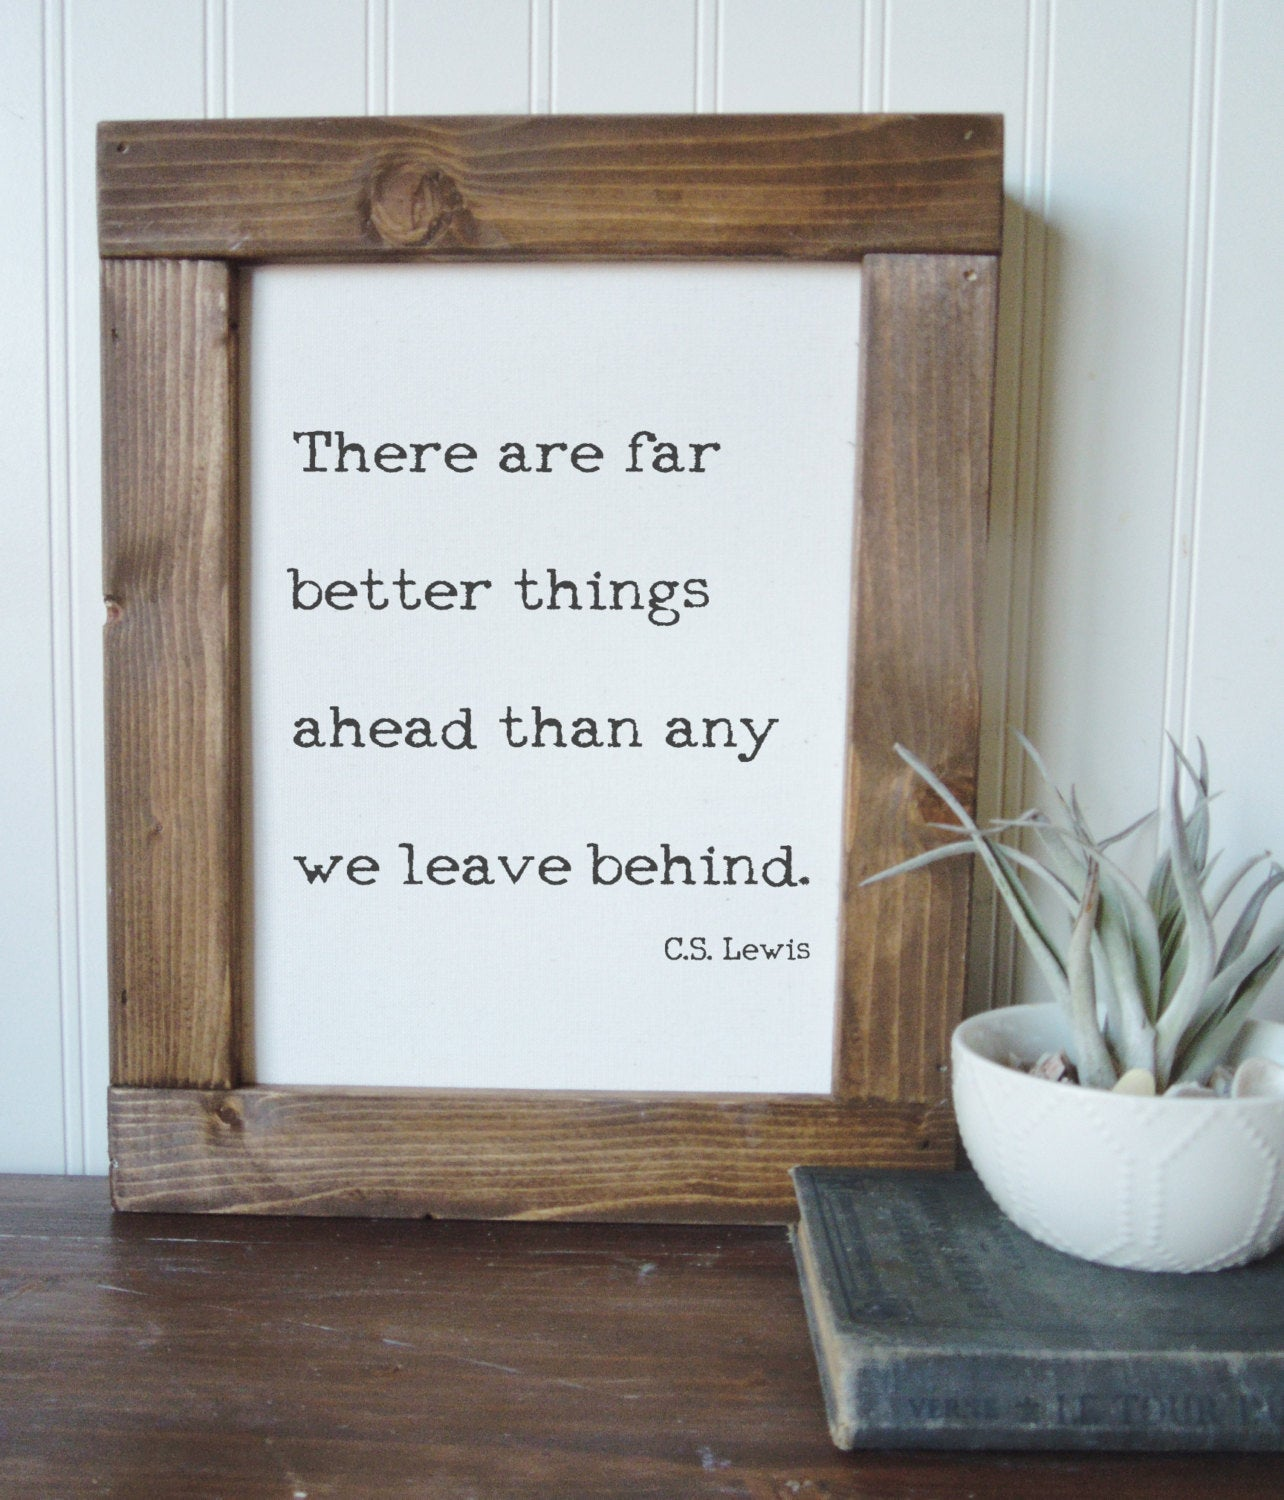 C.S. Lewis quote/there are far better things ahead than any we leave behind/canvas print/picture frame/tabletop sign/home decor/wall art